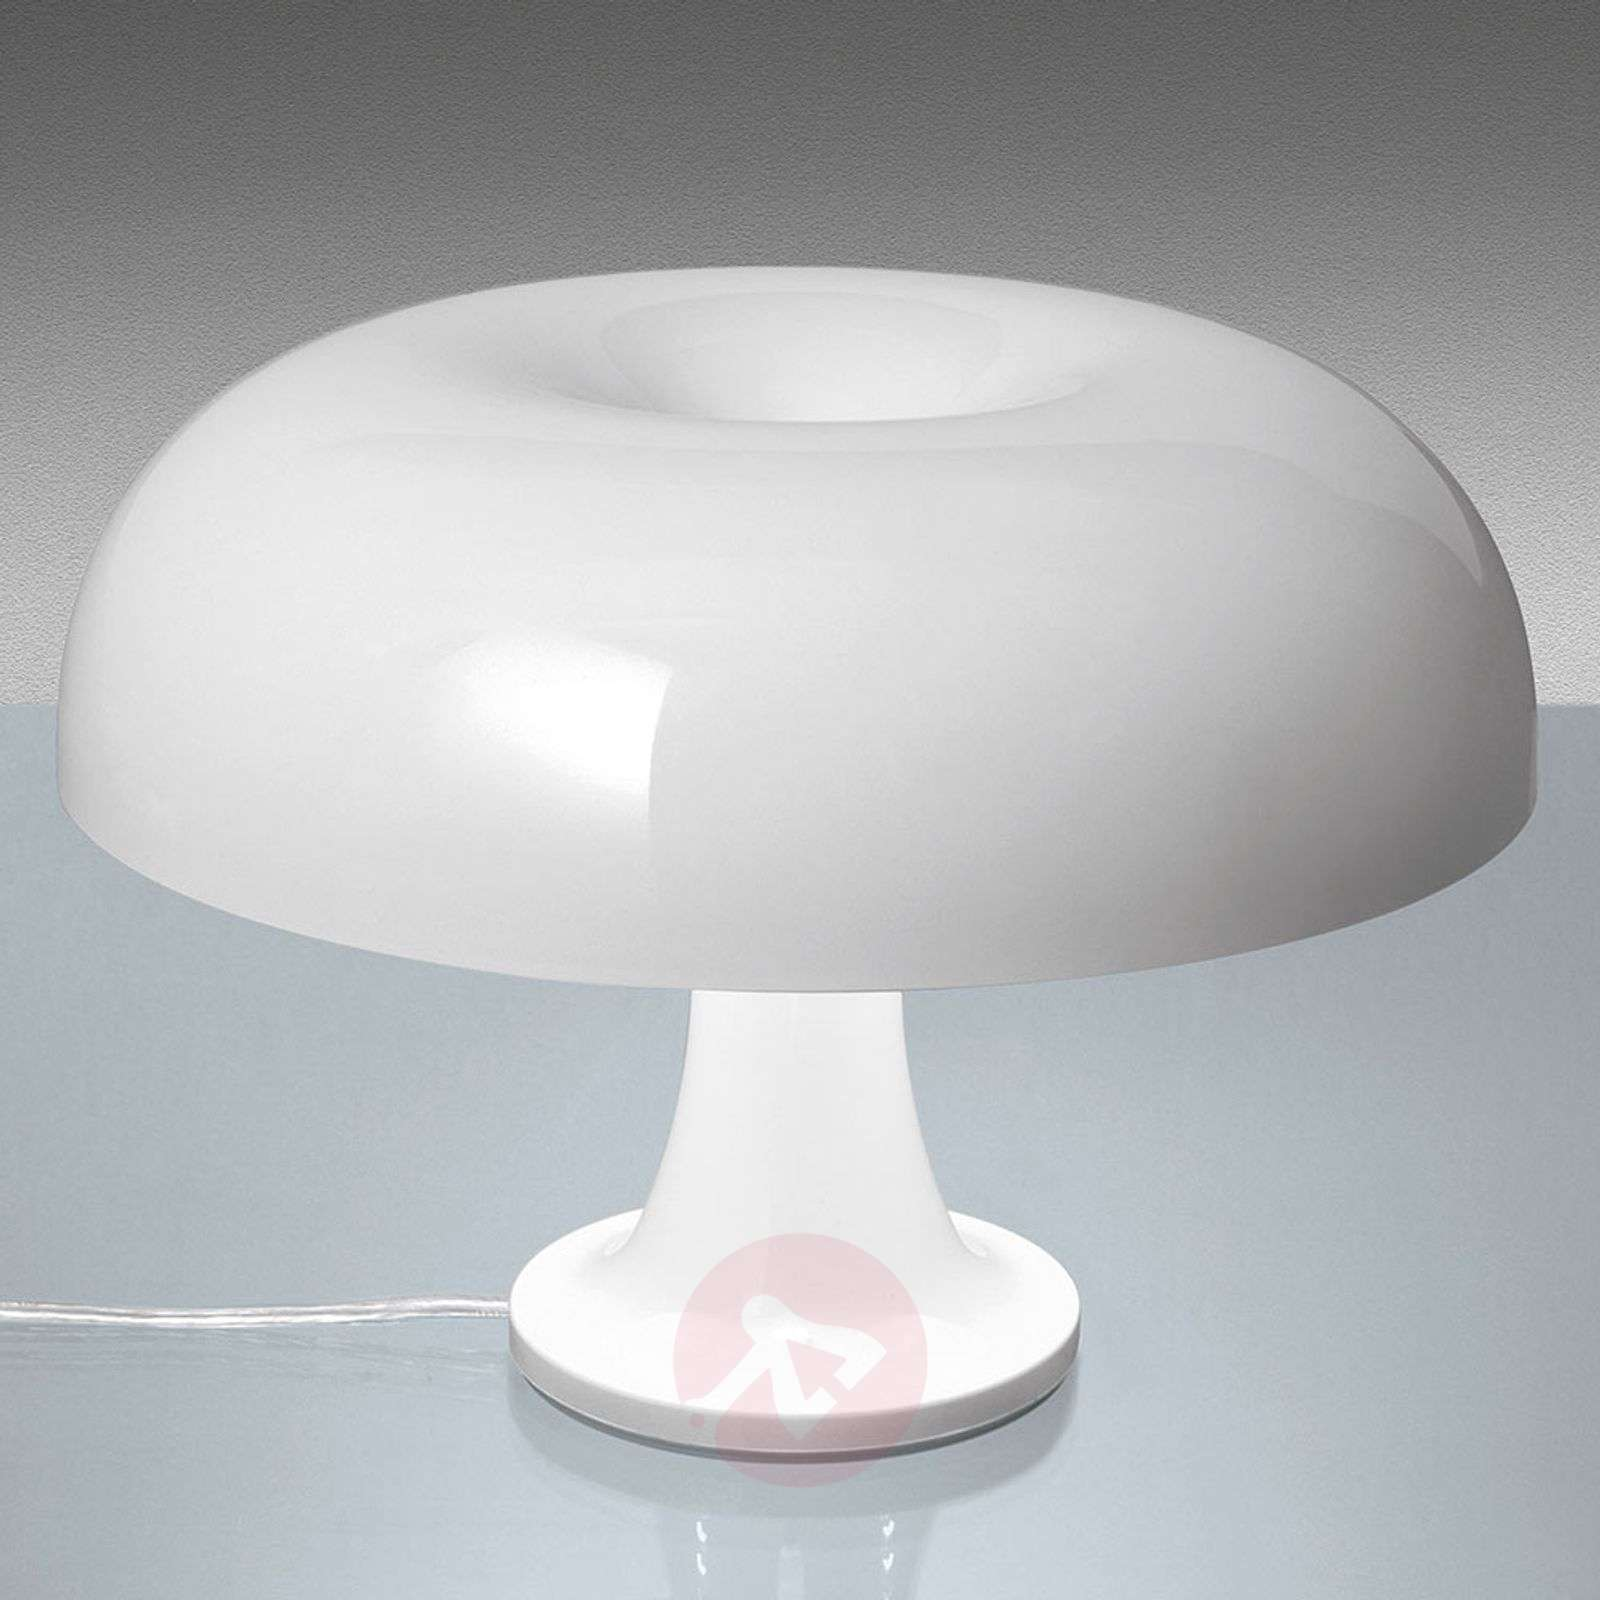 Artemide Nessino Design tafellamp-1060167X-01